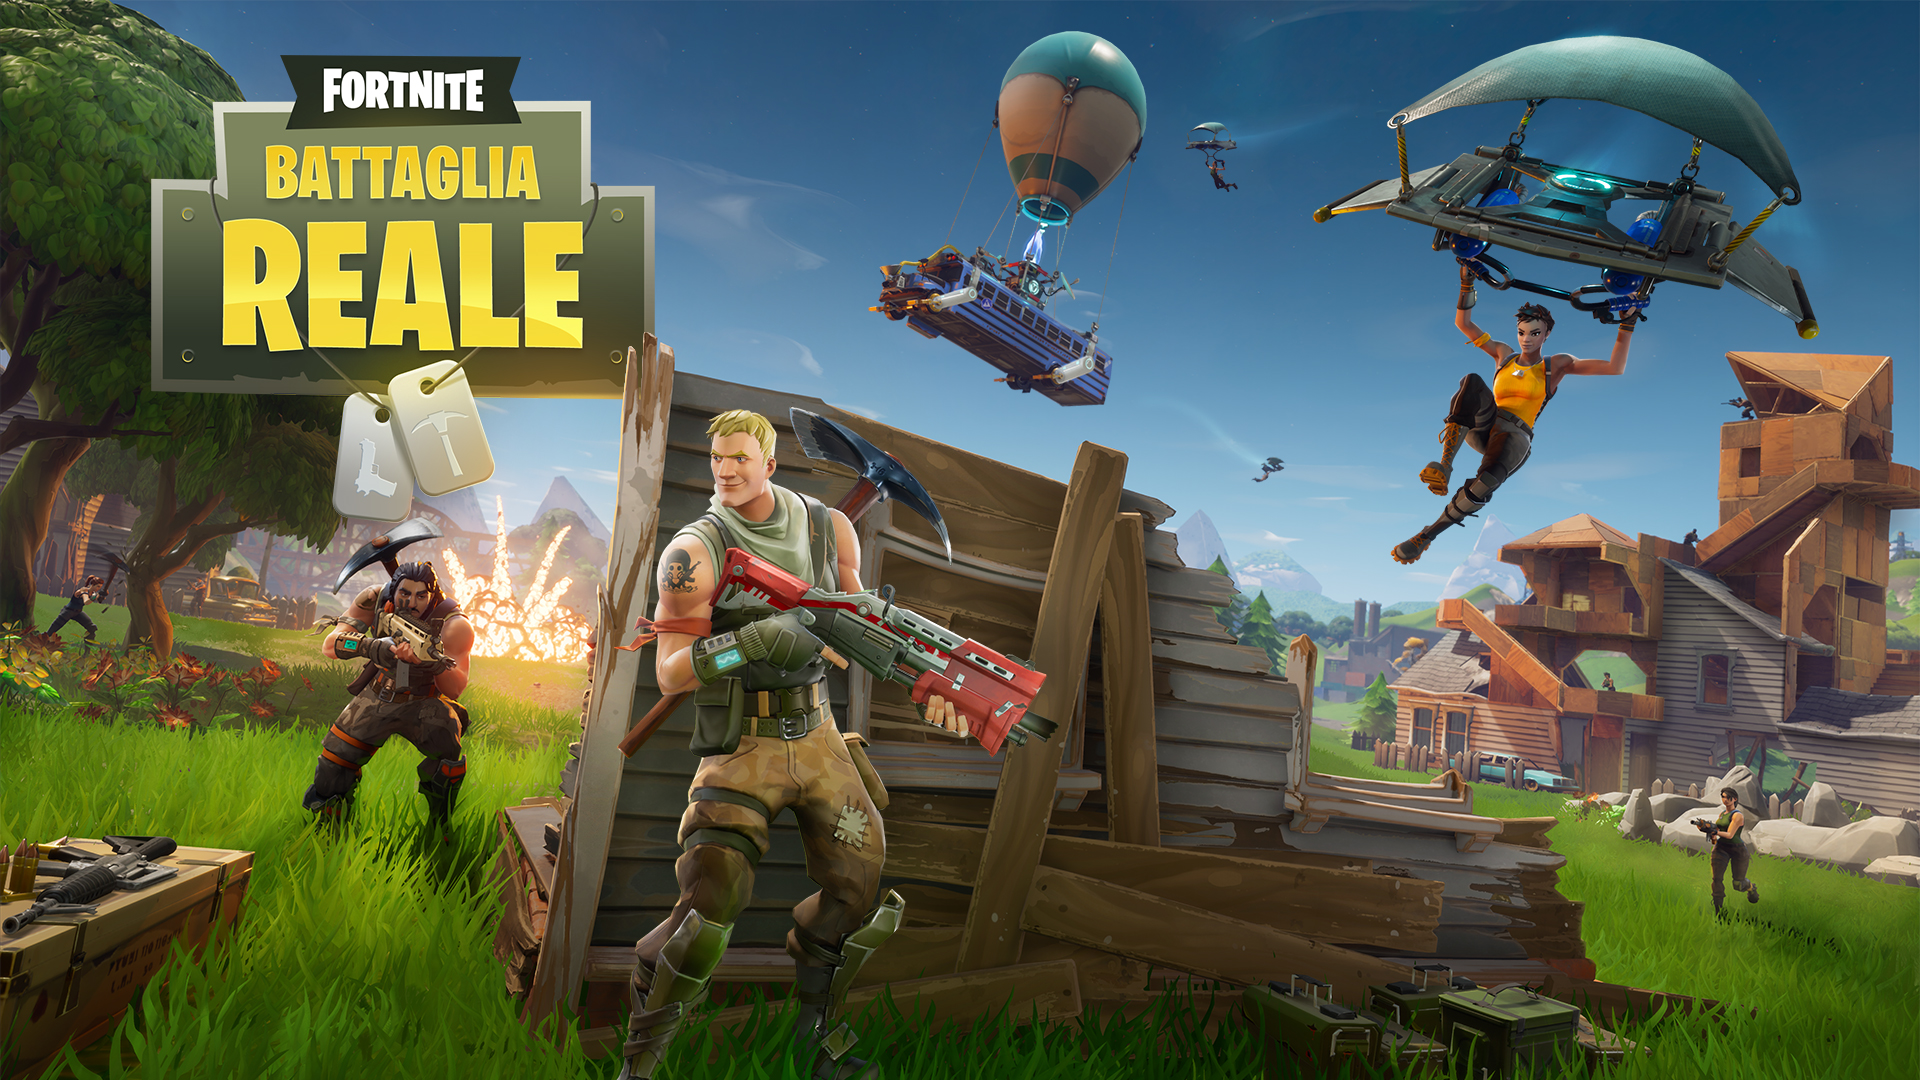 Fortnite%2Fblog%2Fpatch-v-1-6---fortnite-battle-royale%2FFortnite-BR_Key-Art_w-Logo_IT-1920x1080-45efc5c685ae7eb9ce8f4921c13a46d40746458b